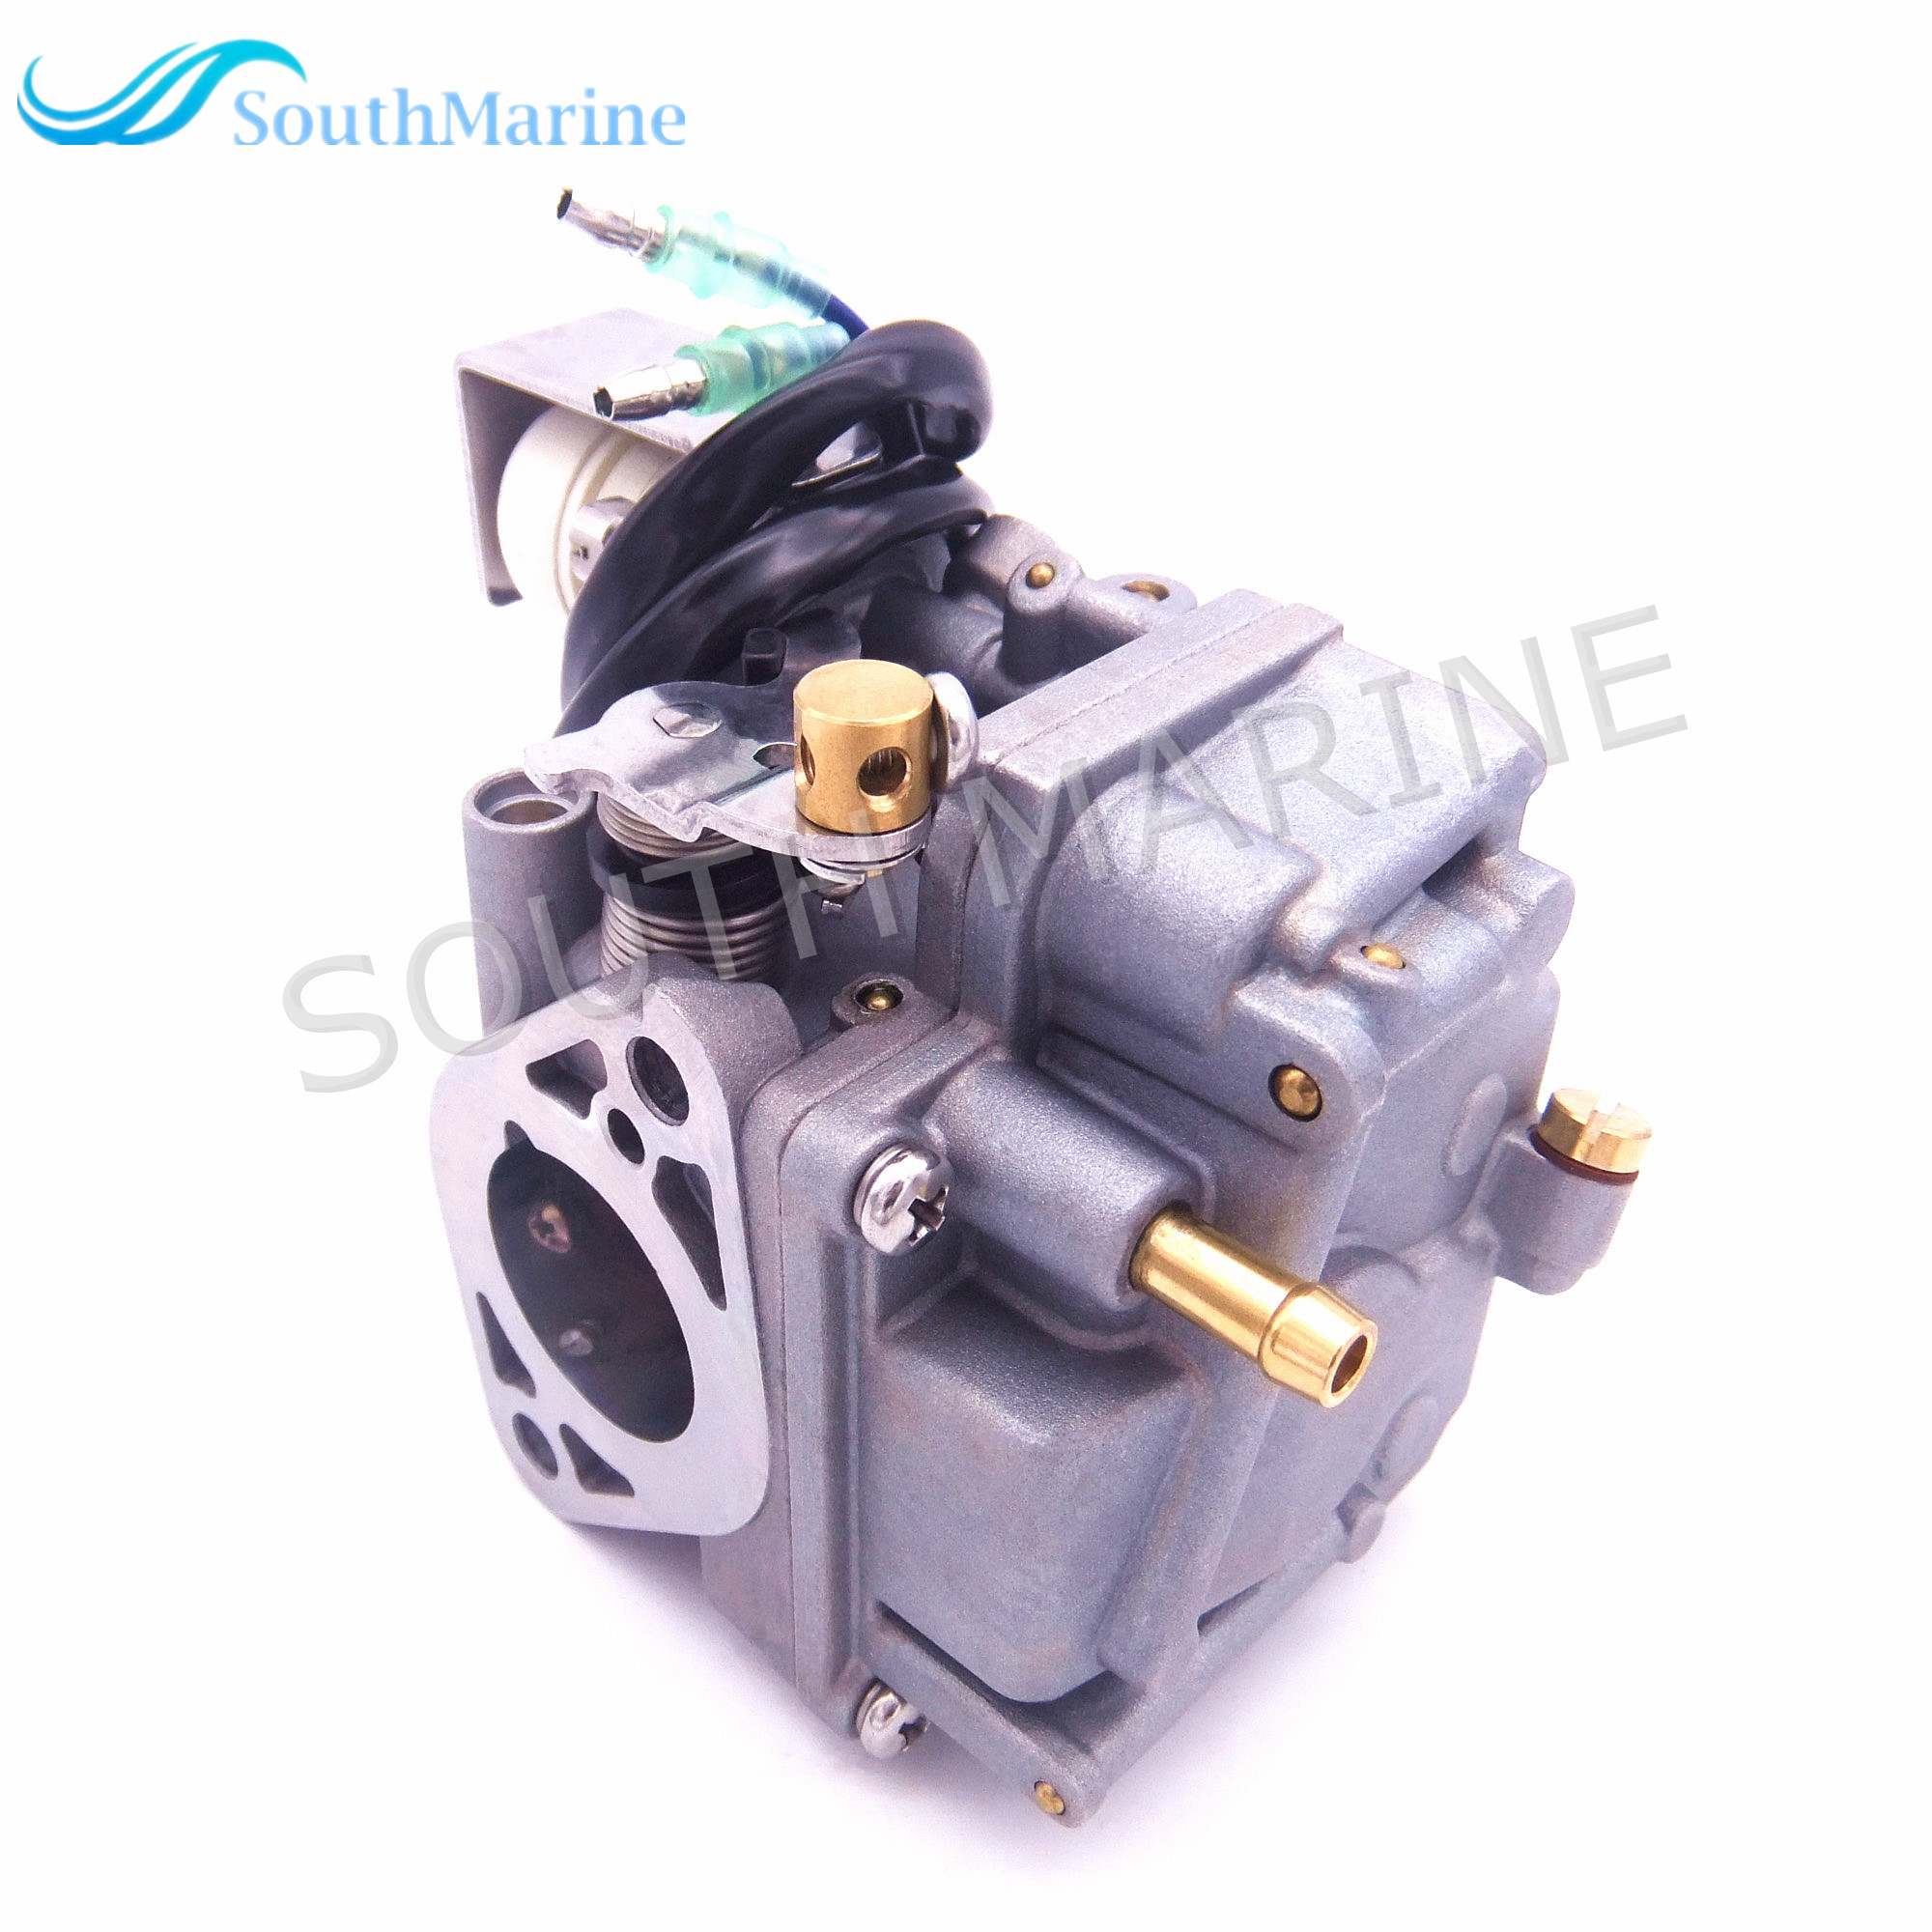 Boat Motor Carburetor Assy 6AH-14301-00 6AH-14301-01 for Yamaha 4-stroke F20 Outboard Engine 66m 14301 11 66m 14301 00 carburetor assy for yamaha 4 stroke 15hp f15 outboard motors